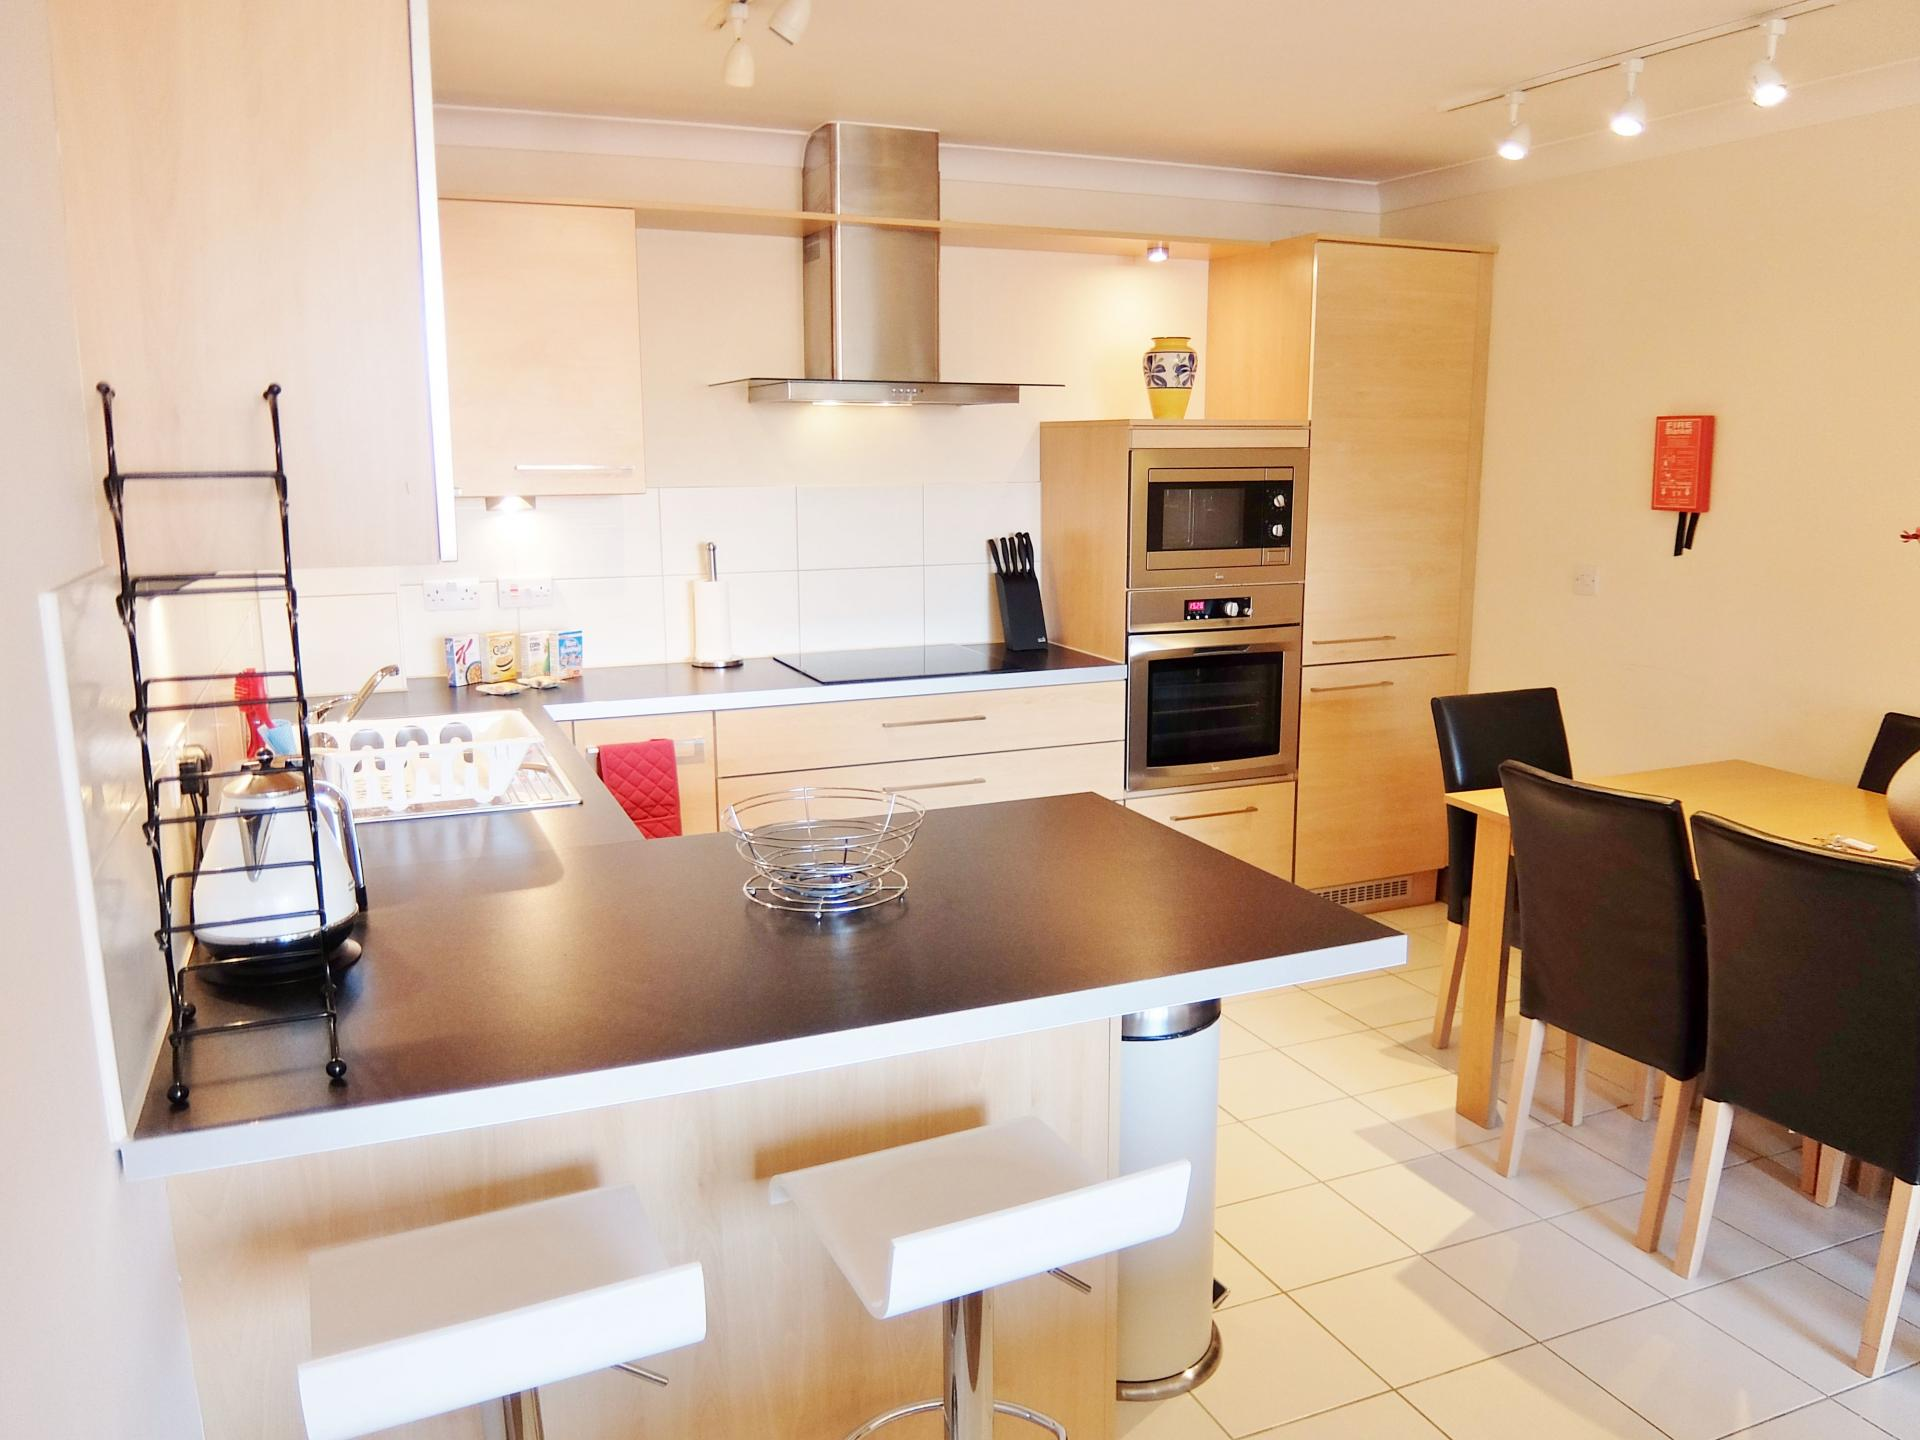 Kitchen diner at Hampton Court Serviced Apartments, Hampton Court, London - Citybase Apartments